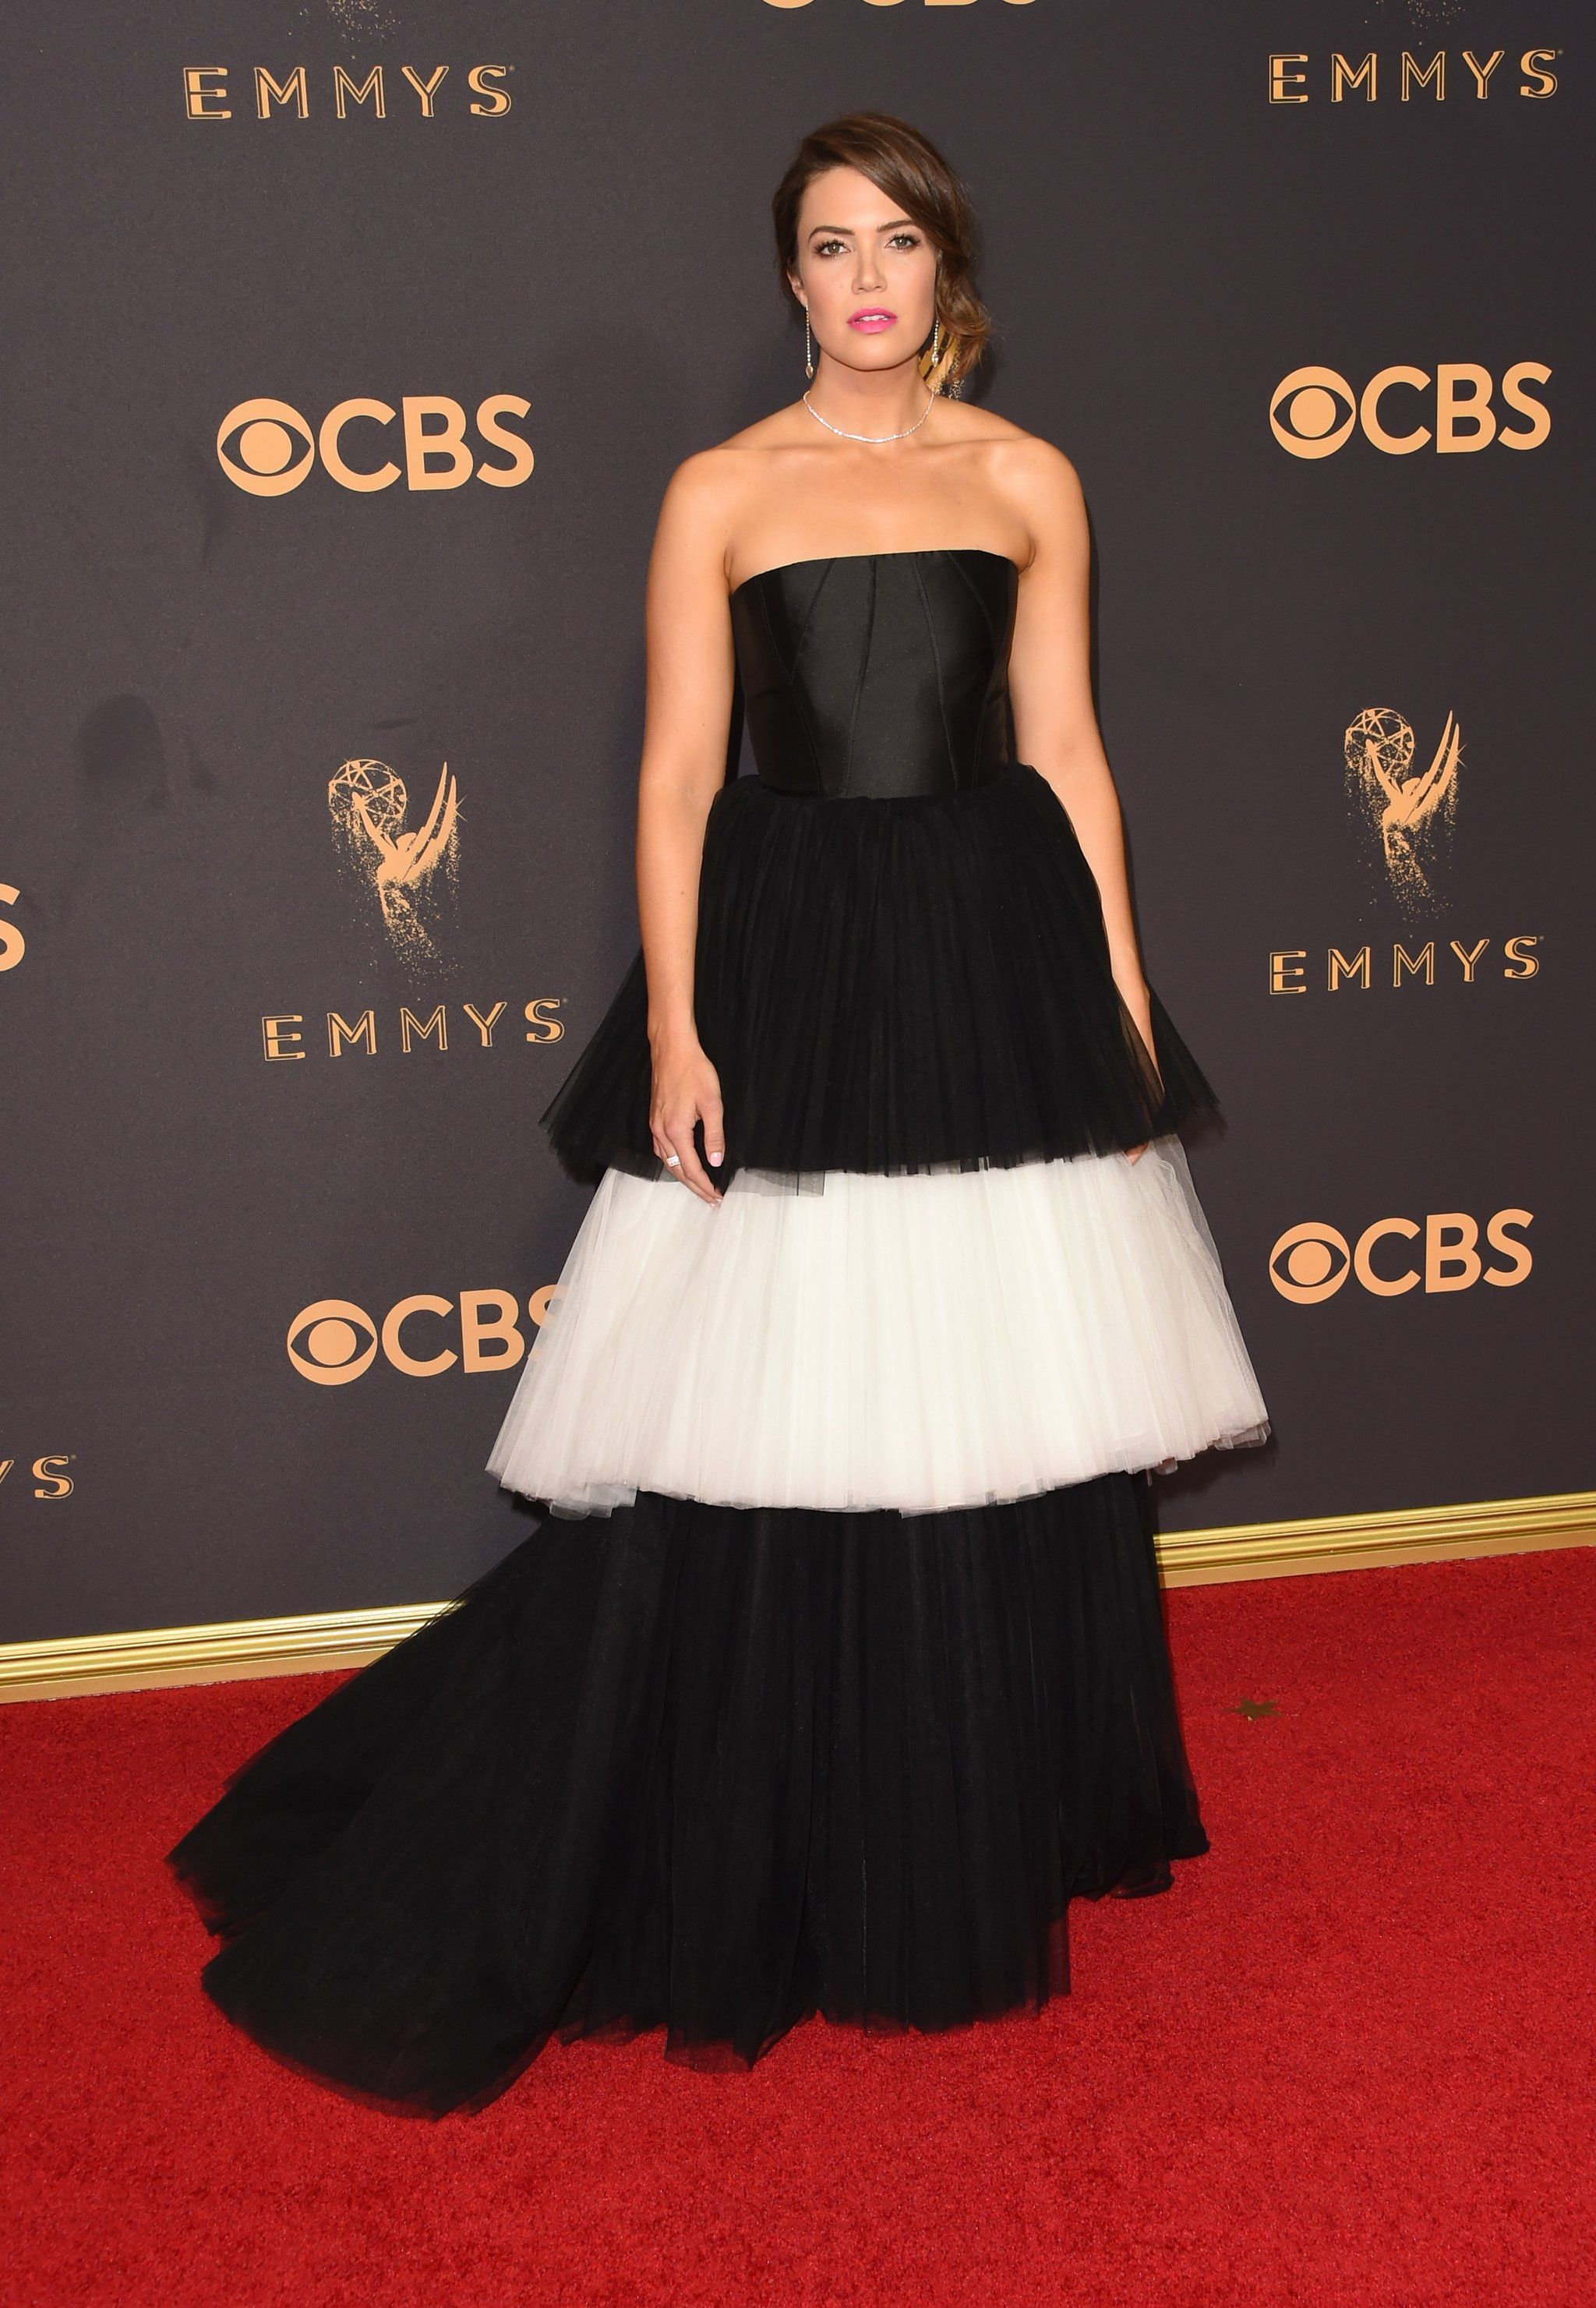 Mandy moore fashion photo white tulle and tulle gown